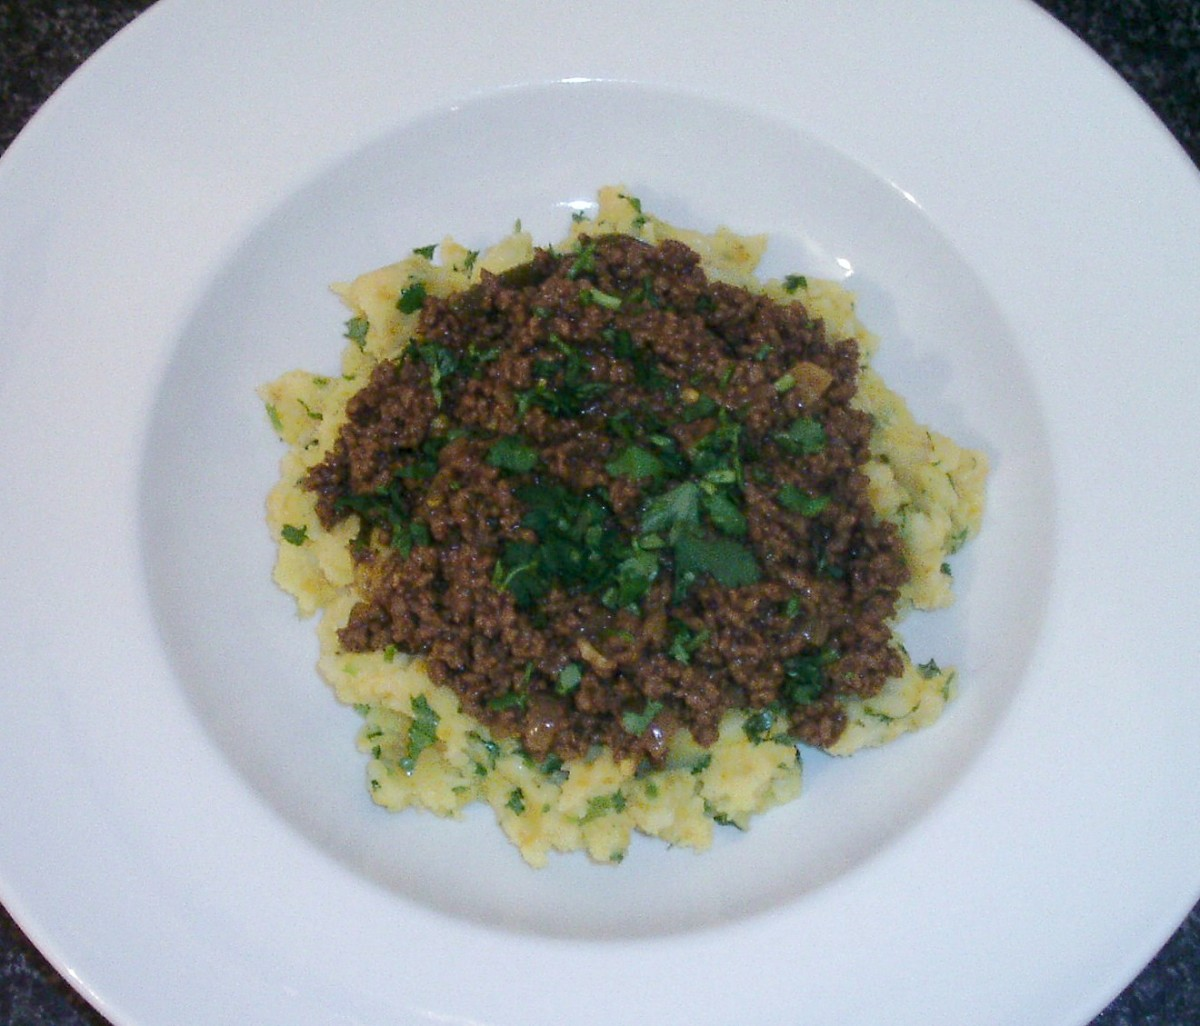 Curry and chilli spiced beef on a bed of turmeric mashed potatoes